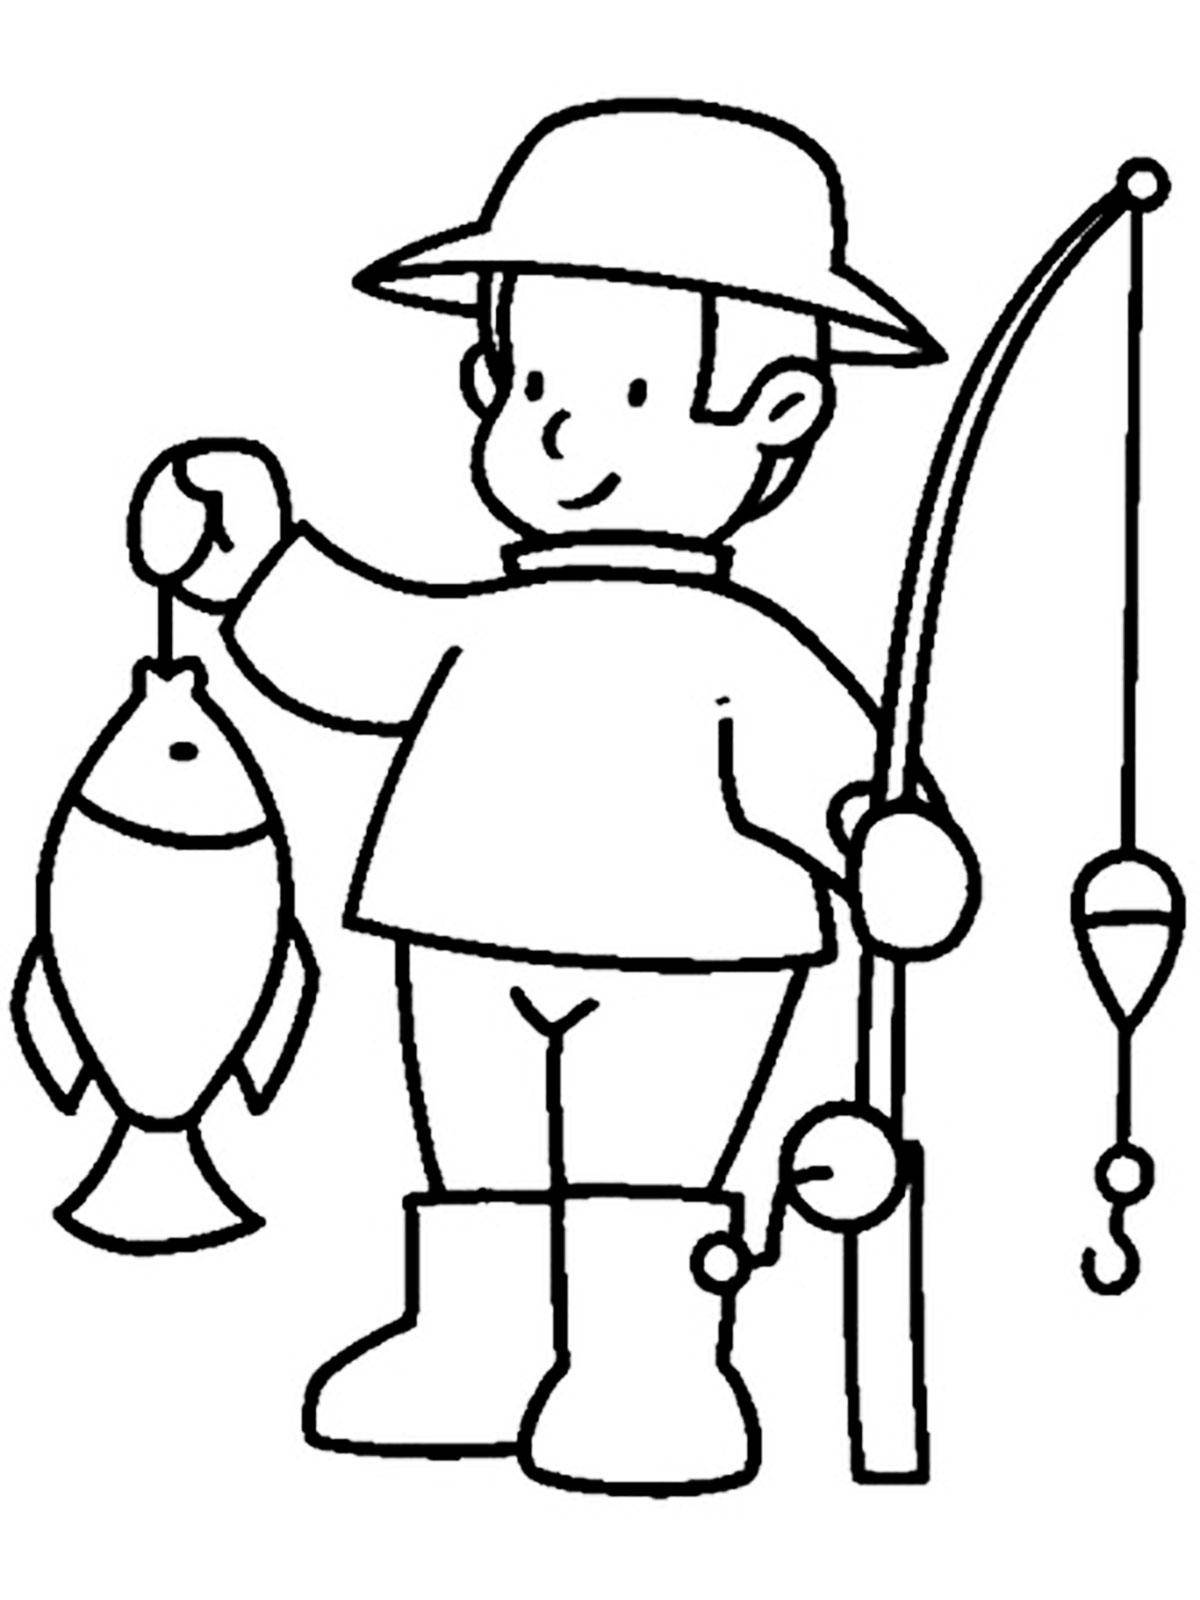 Coloring Fisherman and his catch Download Fisherman,.  Print